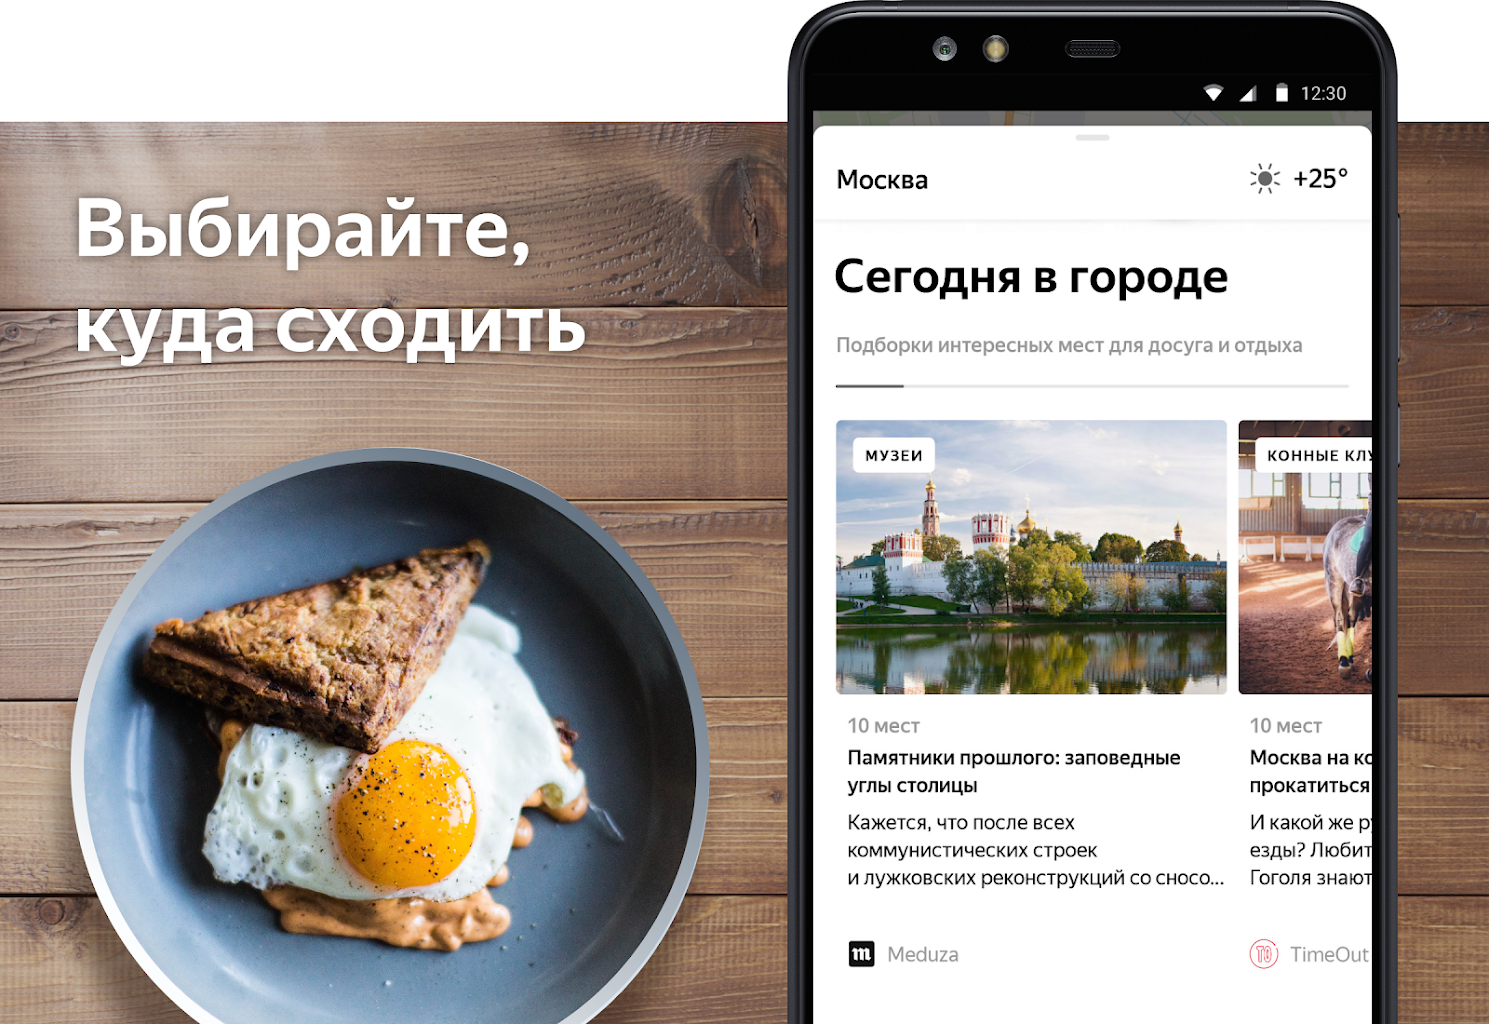 Download Yandex Maps 8 4 APK (MOD mod) for android